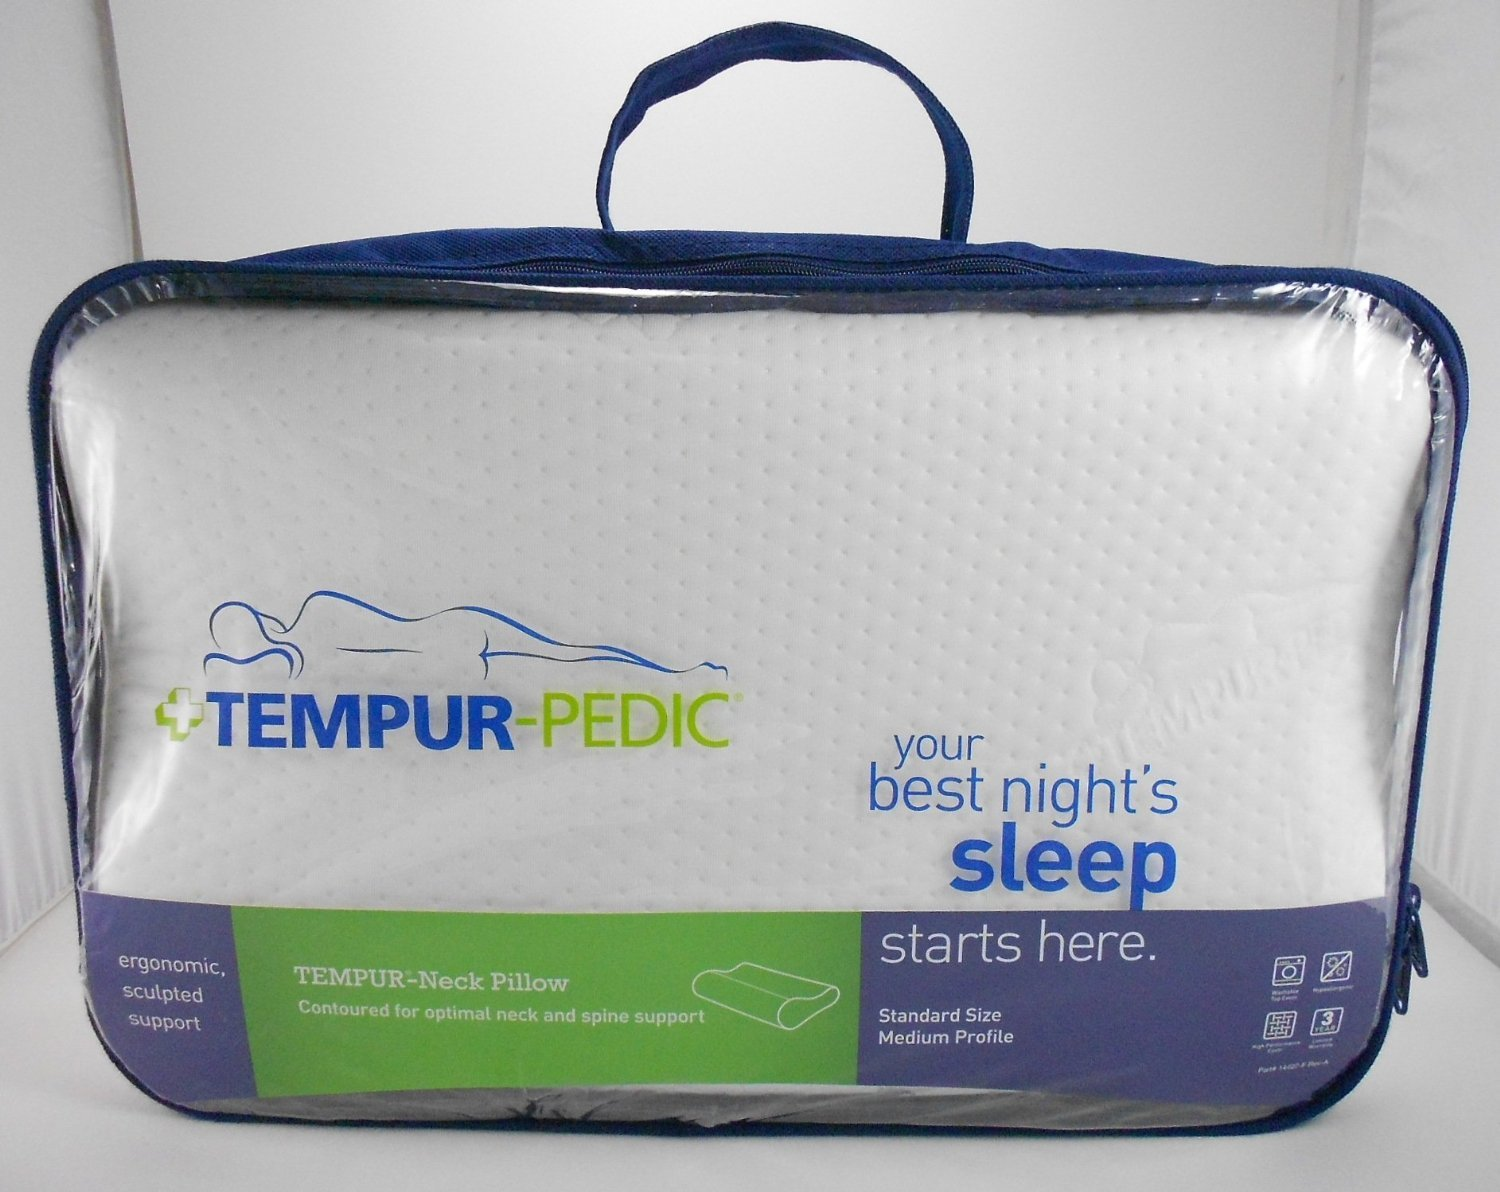 top tempurpedic pillows - Tempurpedic Pillows